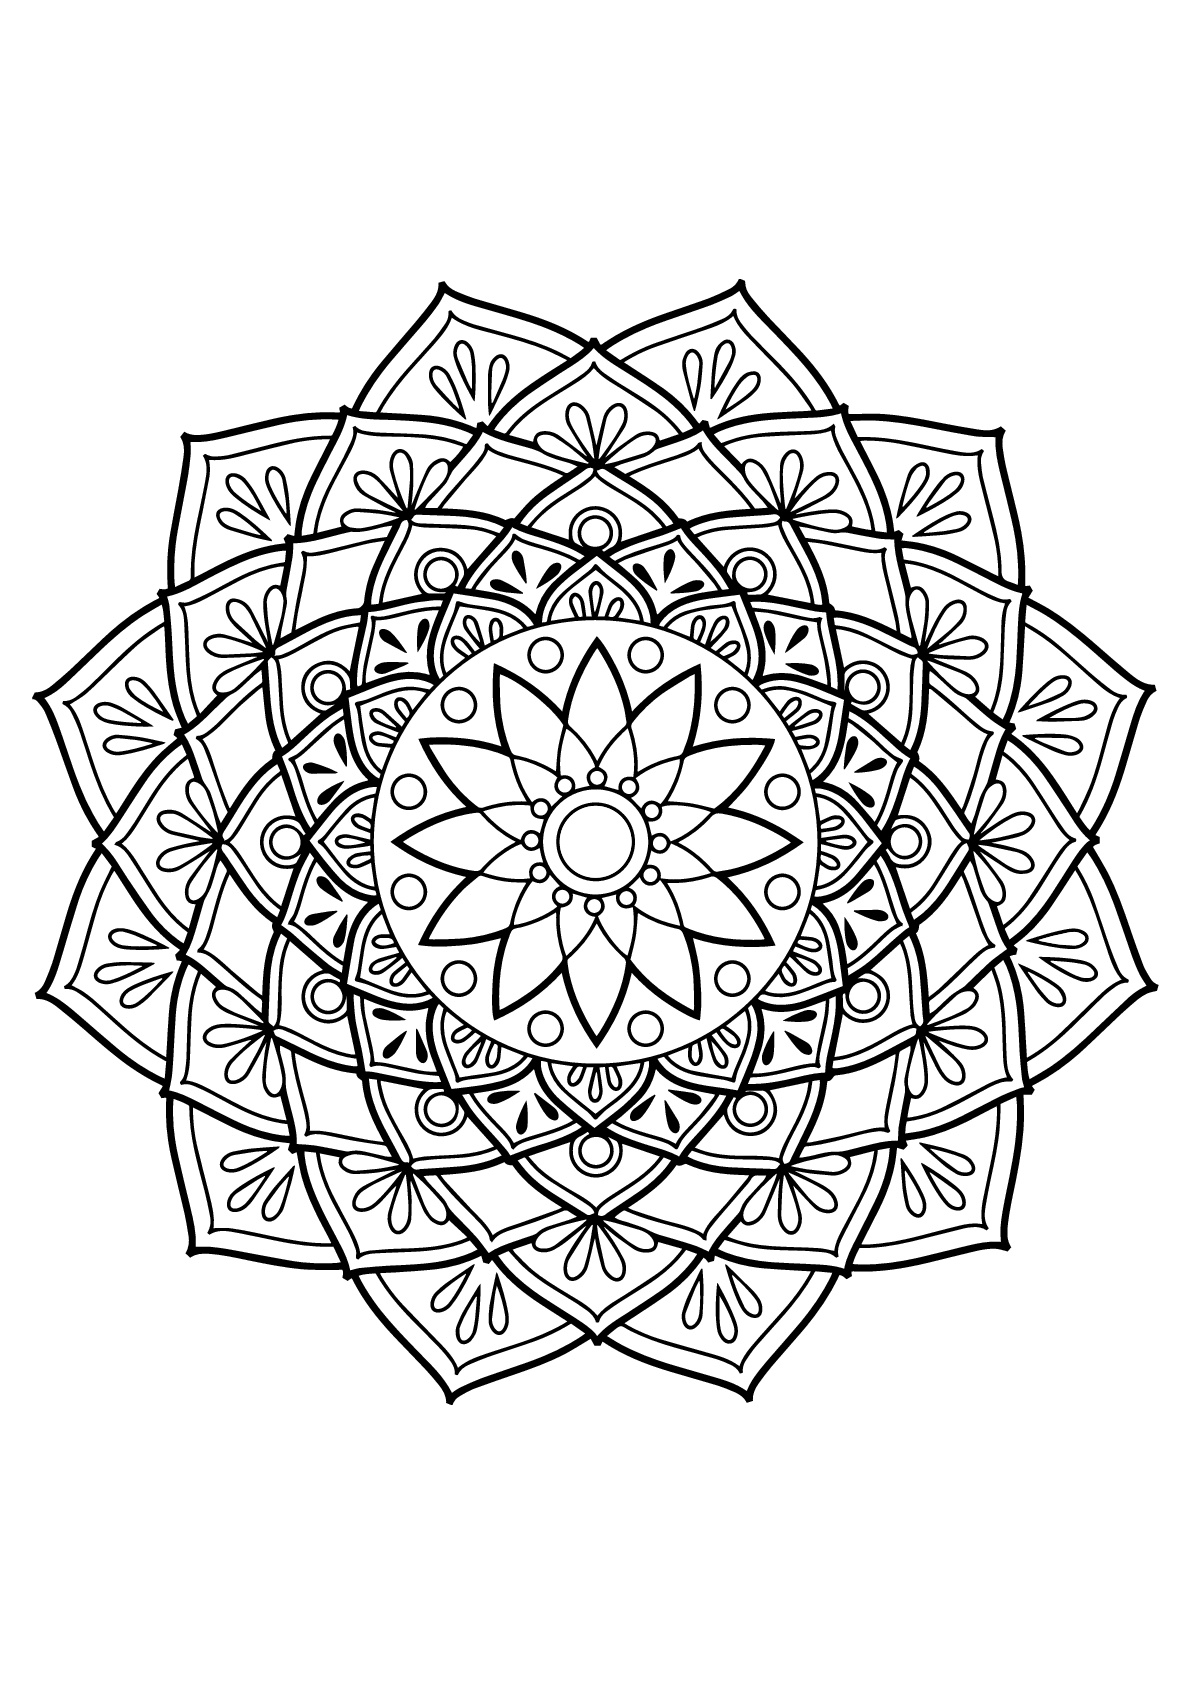 mandalas to color for adults 63 adult coloring pages to nourish your mental visual for color mandalas adults to